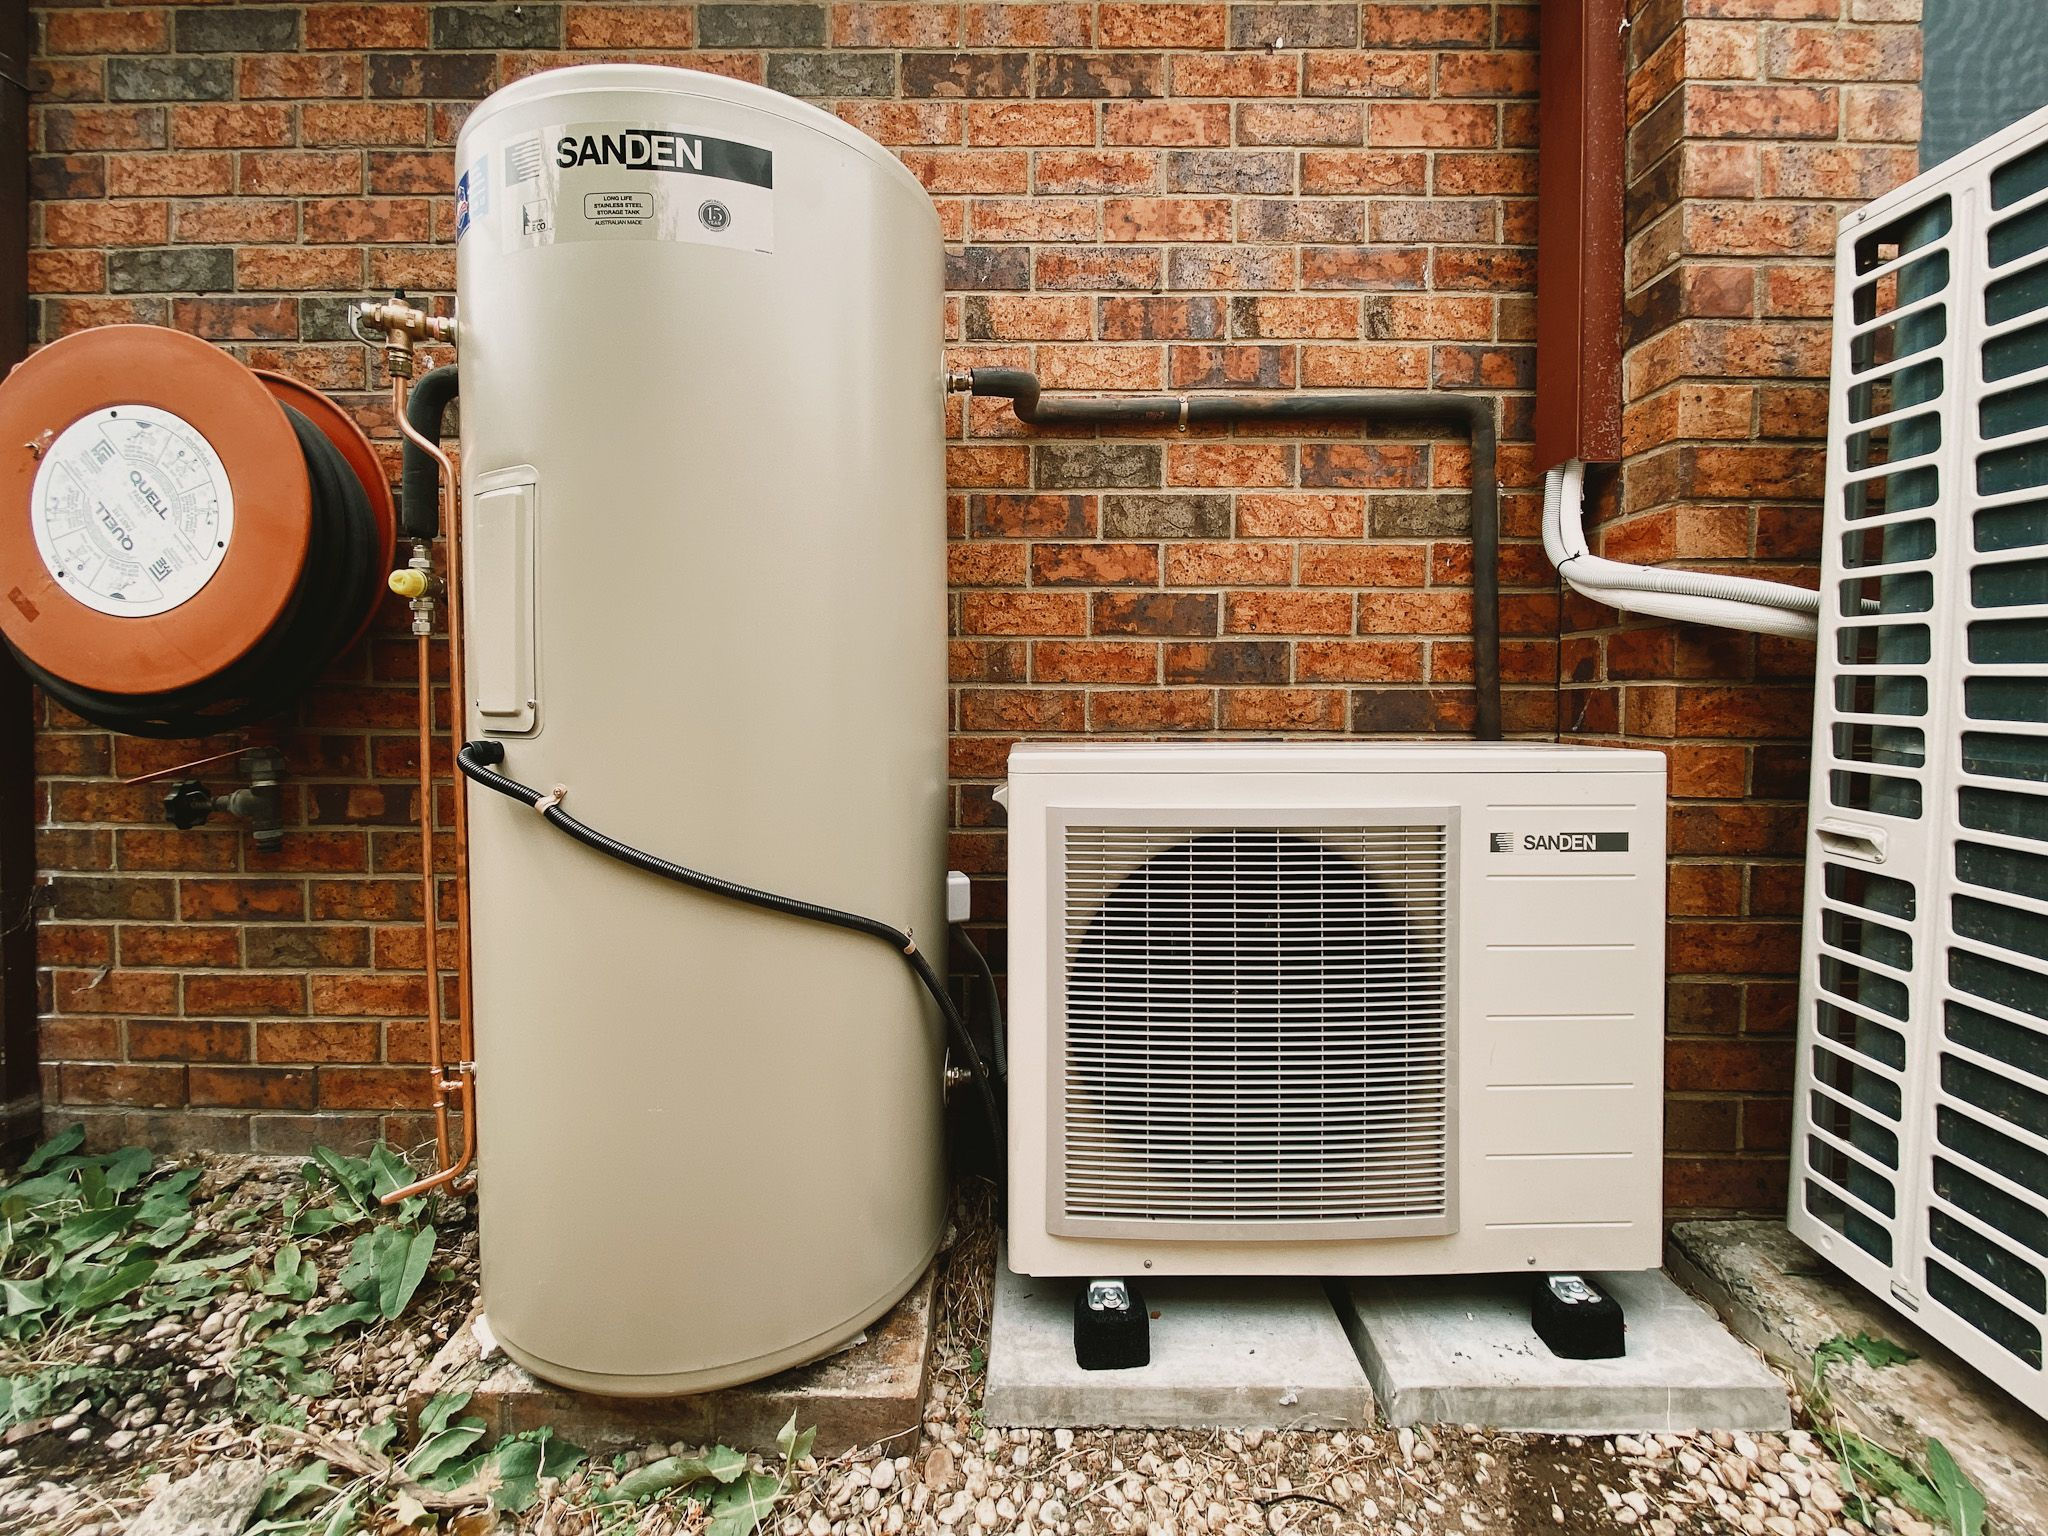 A photo of our heat pump hot water system, which is comprised of a standard-looking hot water water tank with what looks like a small air conditioning compressor next to it.